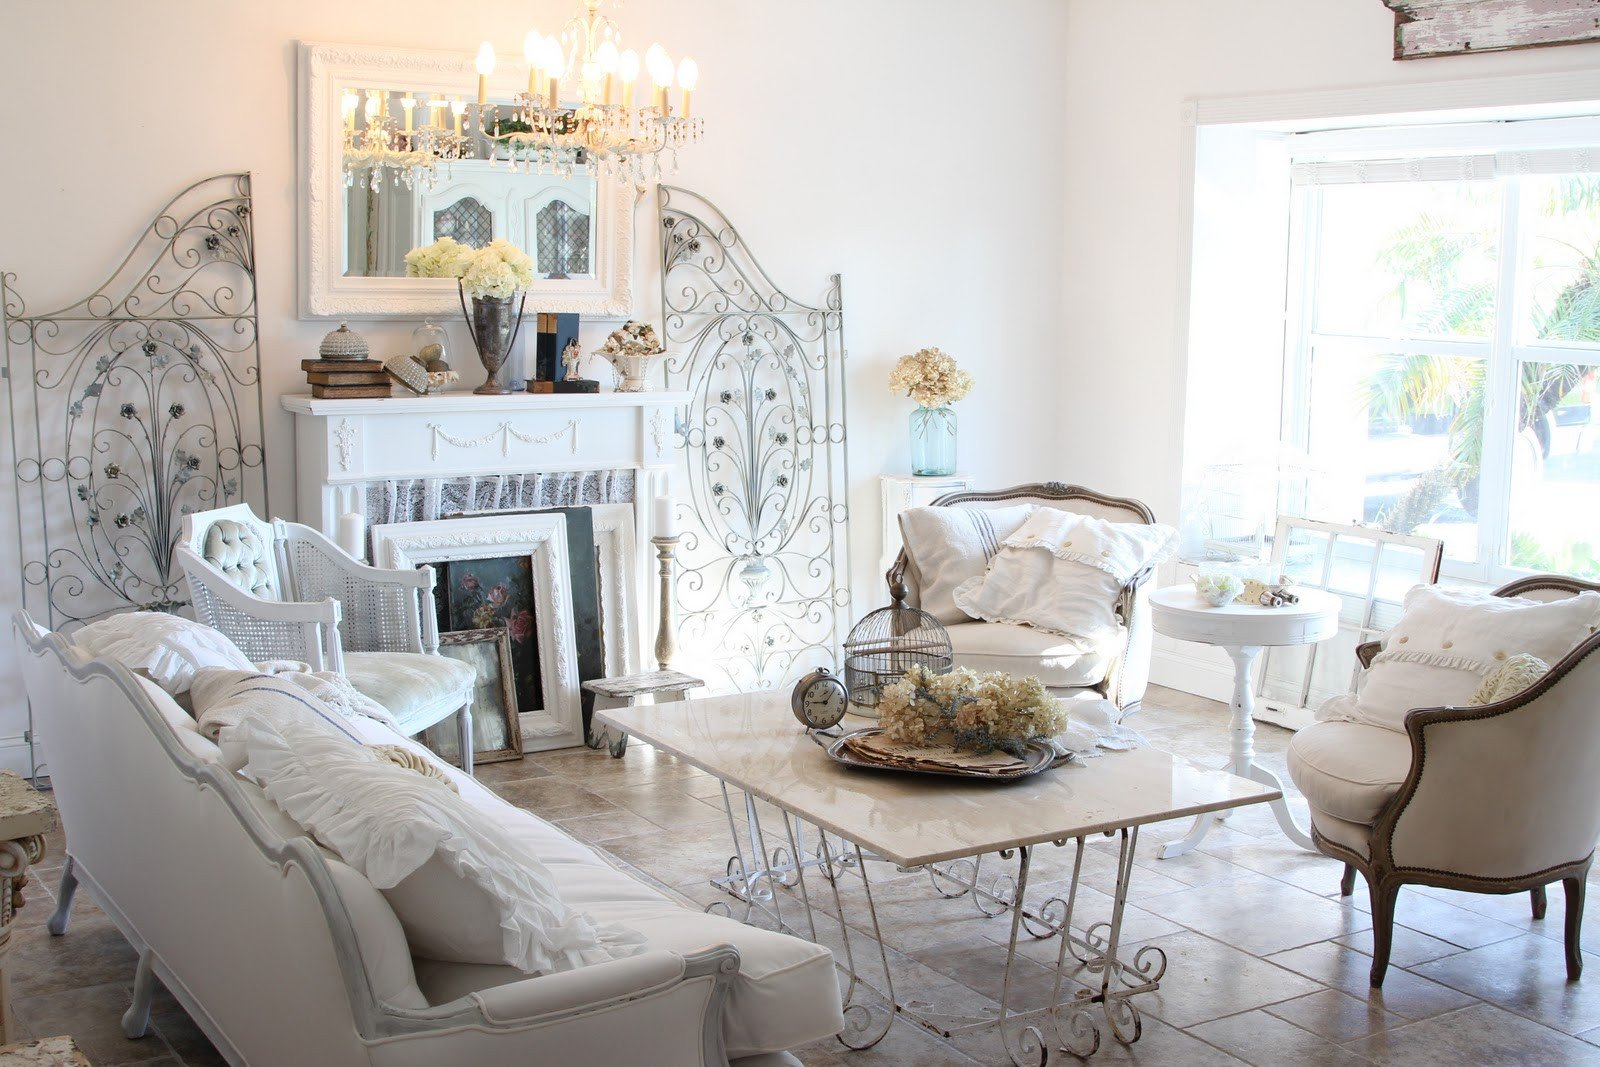 Country Chic Living Room Decor Unique 37 Dream Shabby Chic Living Room Designs Decoholic